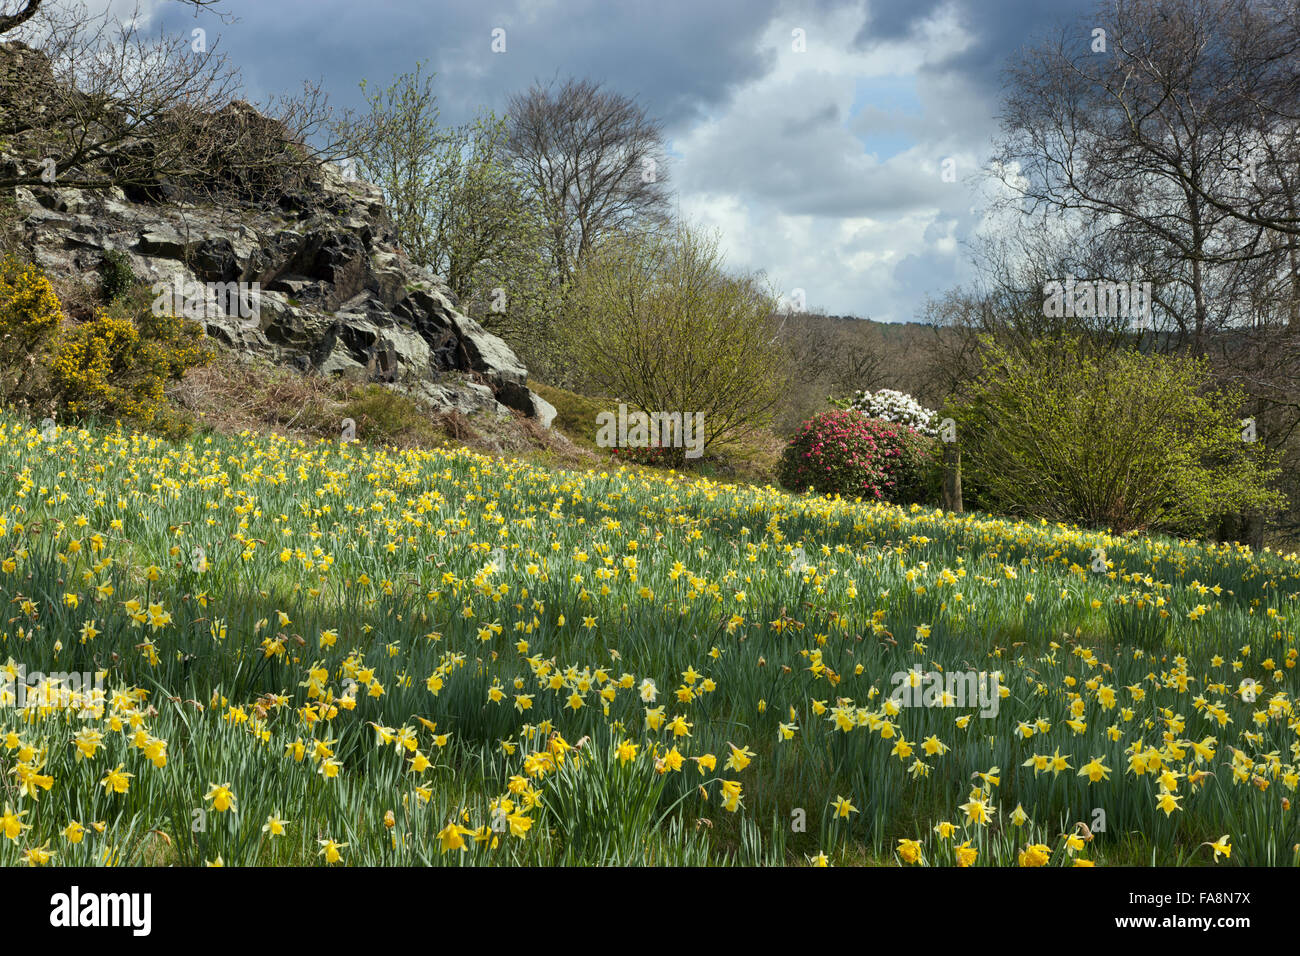 The rocky outcrop at Stoneywell, Leicestershire. - Stock Image